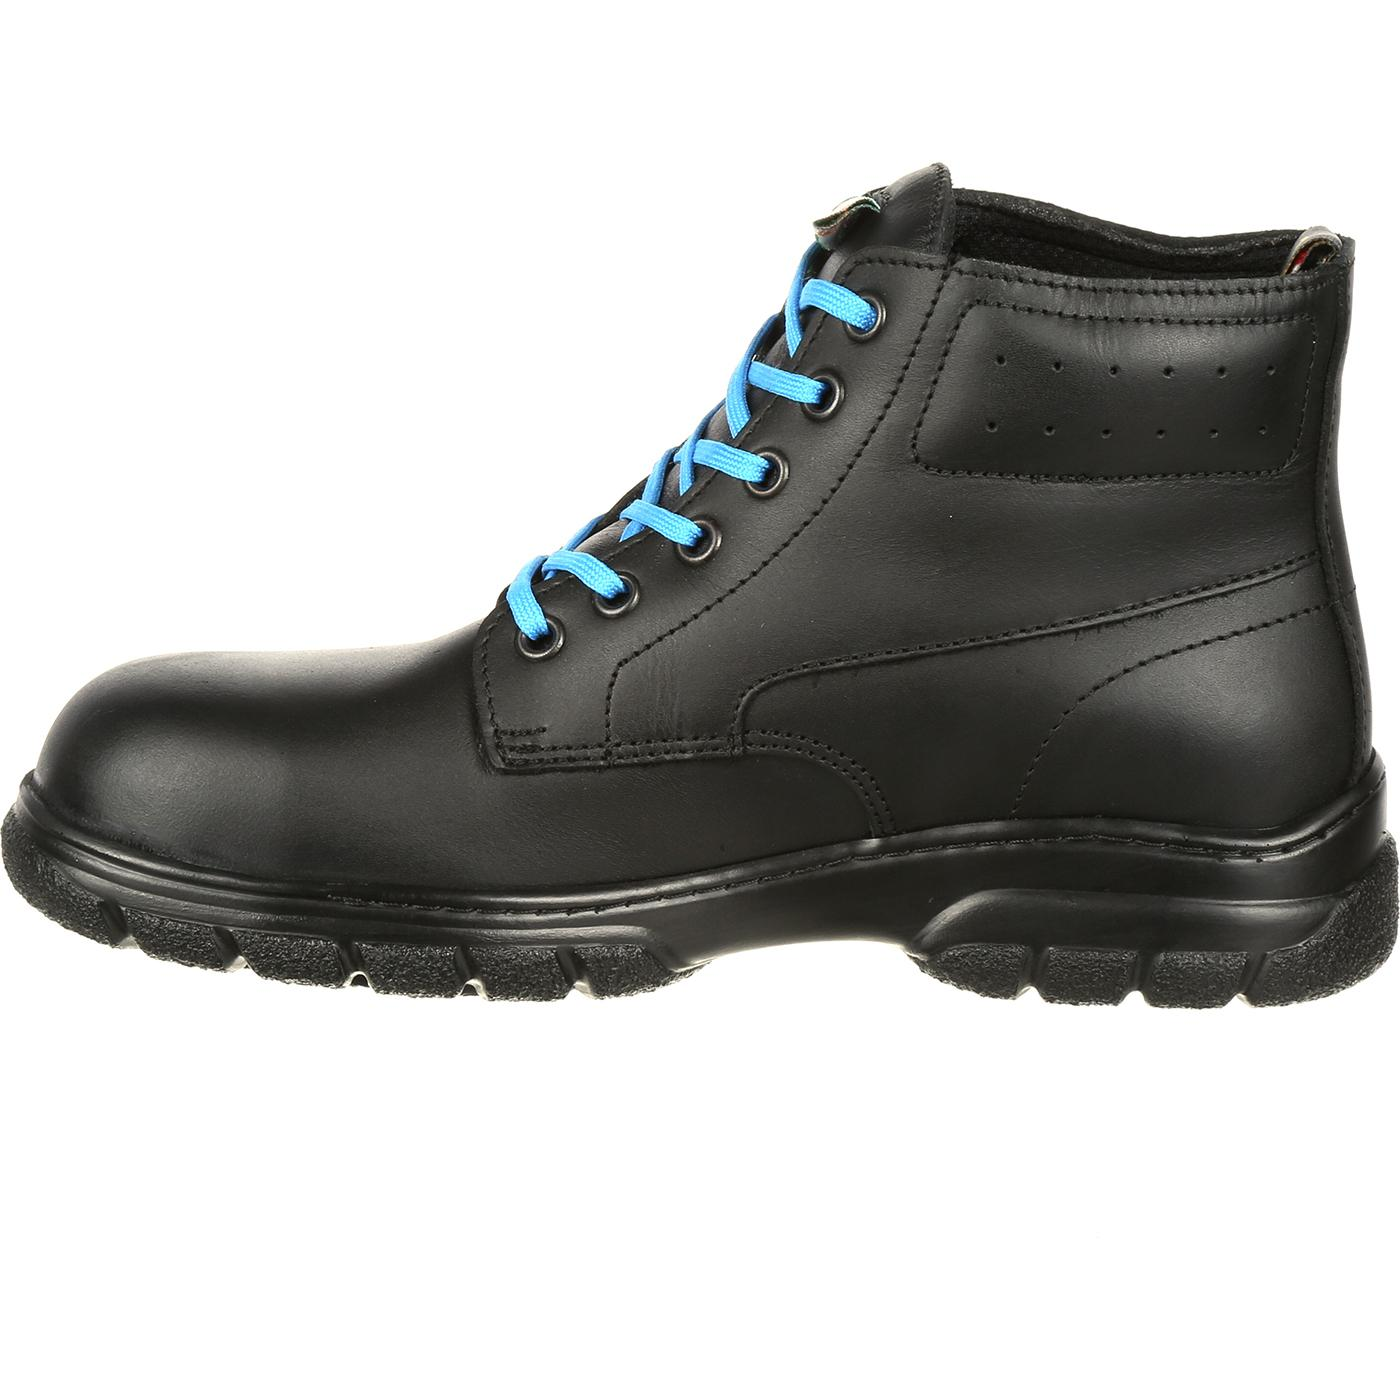 74850a20cf1 Mellow Walk Maddy Women's Steel Toe CSA-Approved Puncture-Resistant Work  Chukka